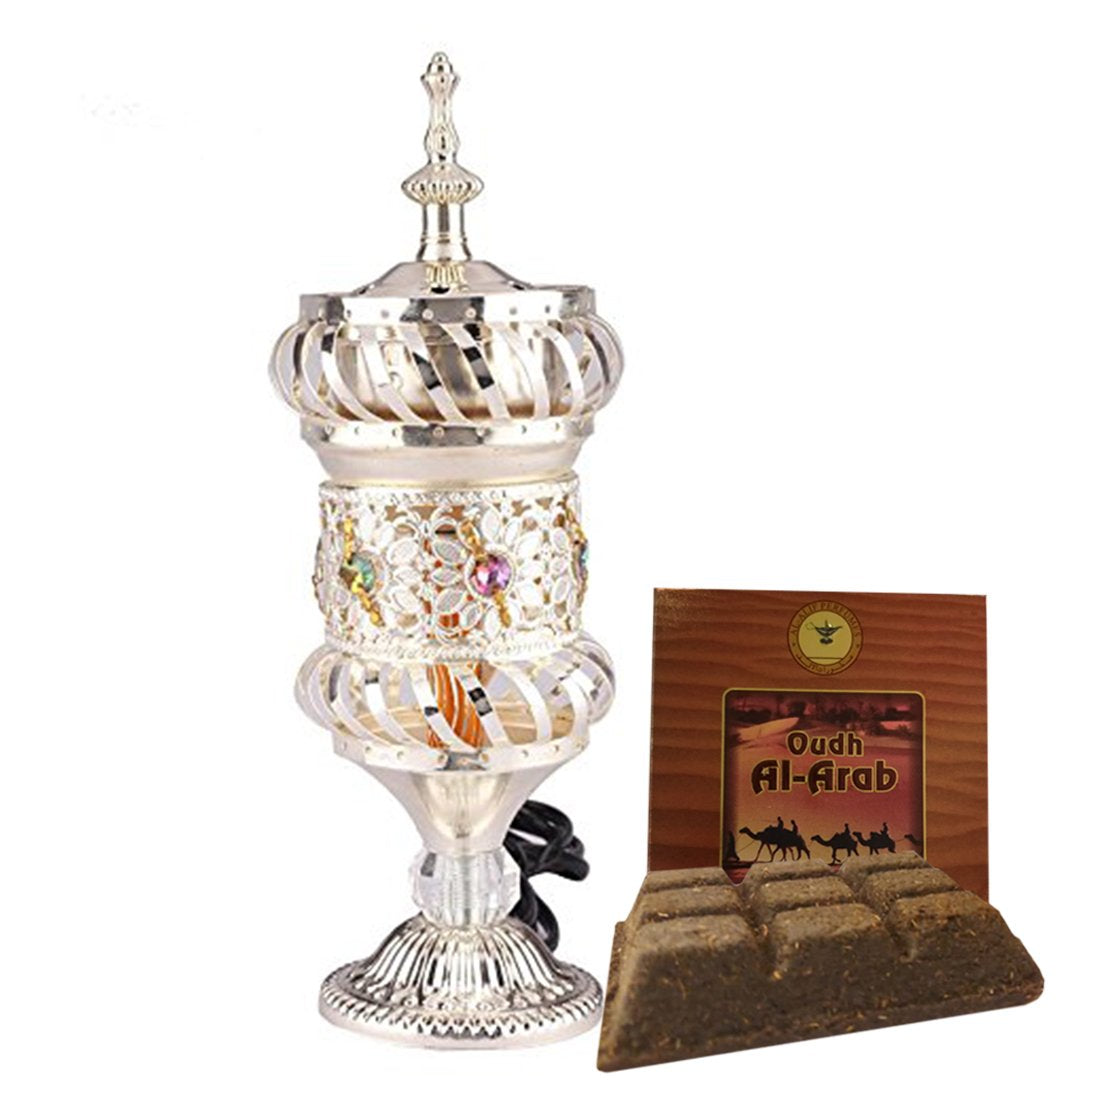 Electrical Bakhoor Burner & 50g Fragrance Paste Iron Incense Holder - Silver (Oud/BAKHOOR/LOBAAN)